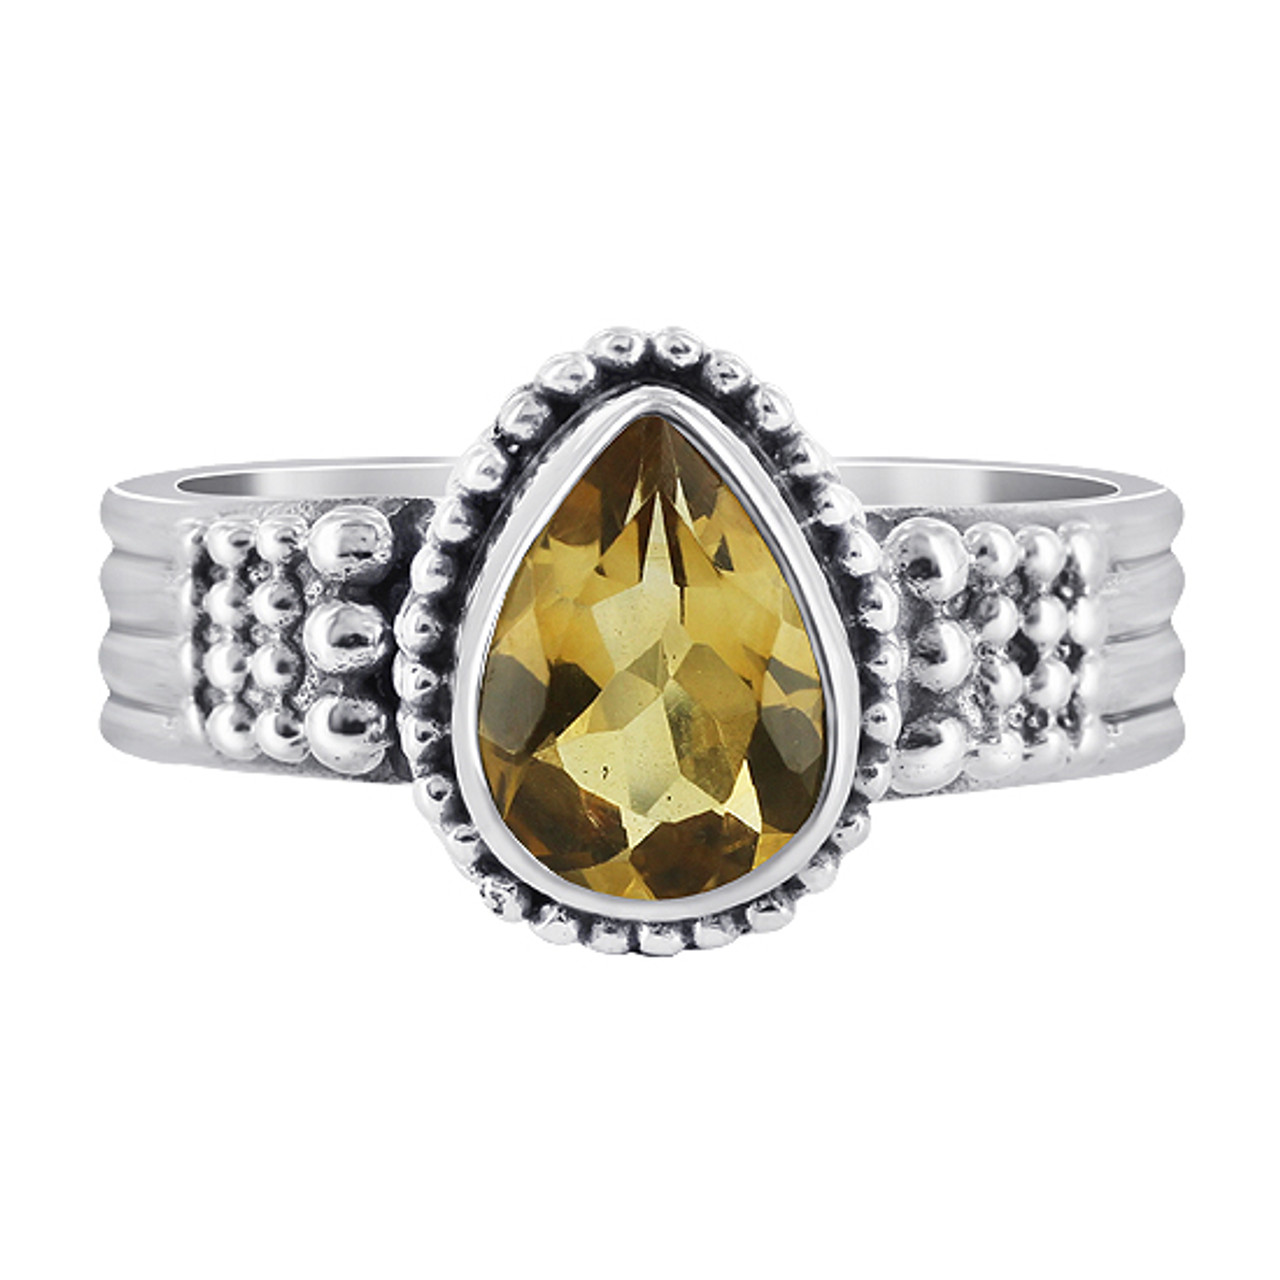 Citrine Gemstone Solitaire 925 Sterling Silver Womens Ring